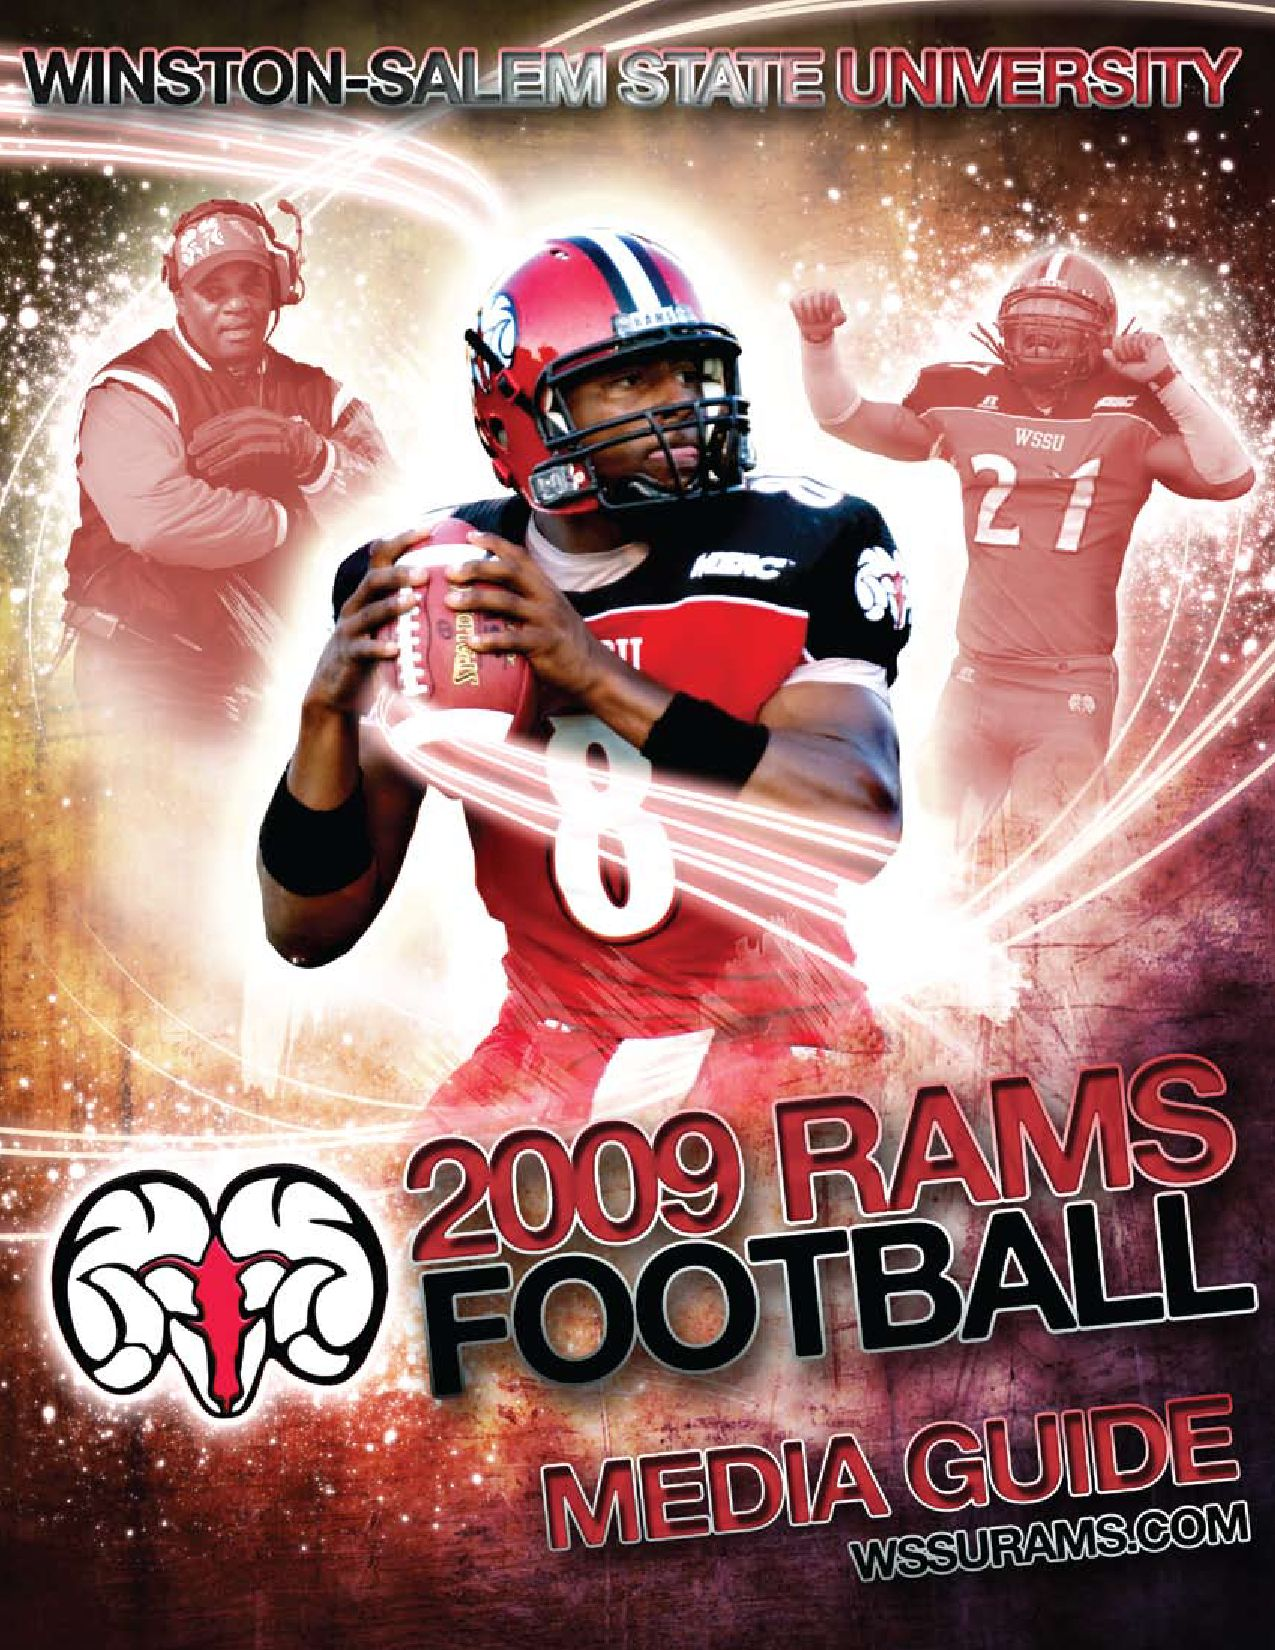 2009 WSSU Football Media Guide by Winston Salem State University